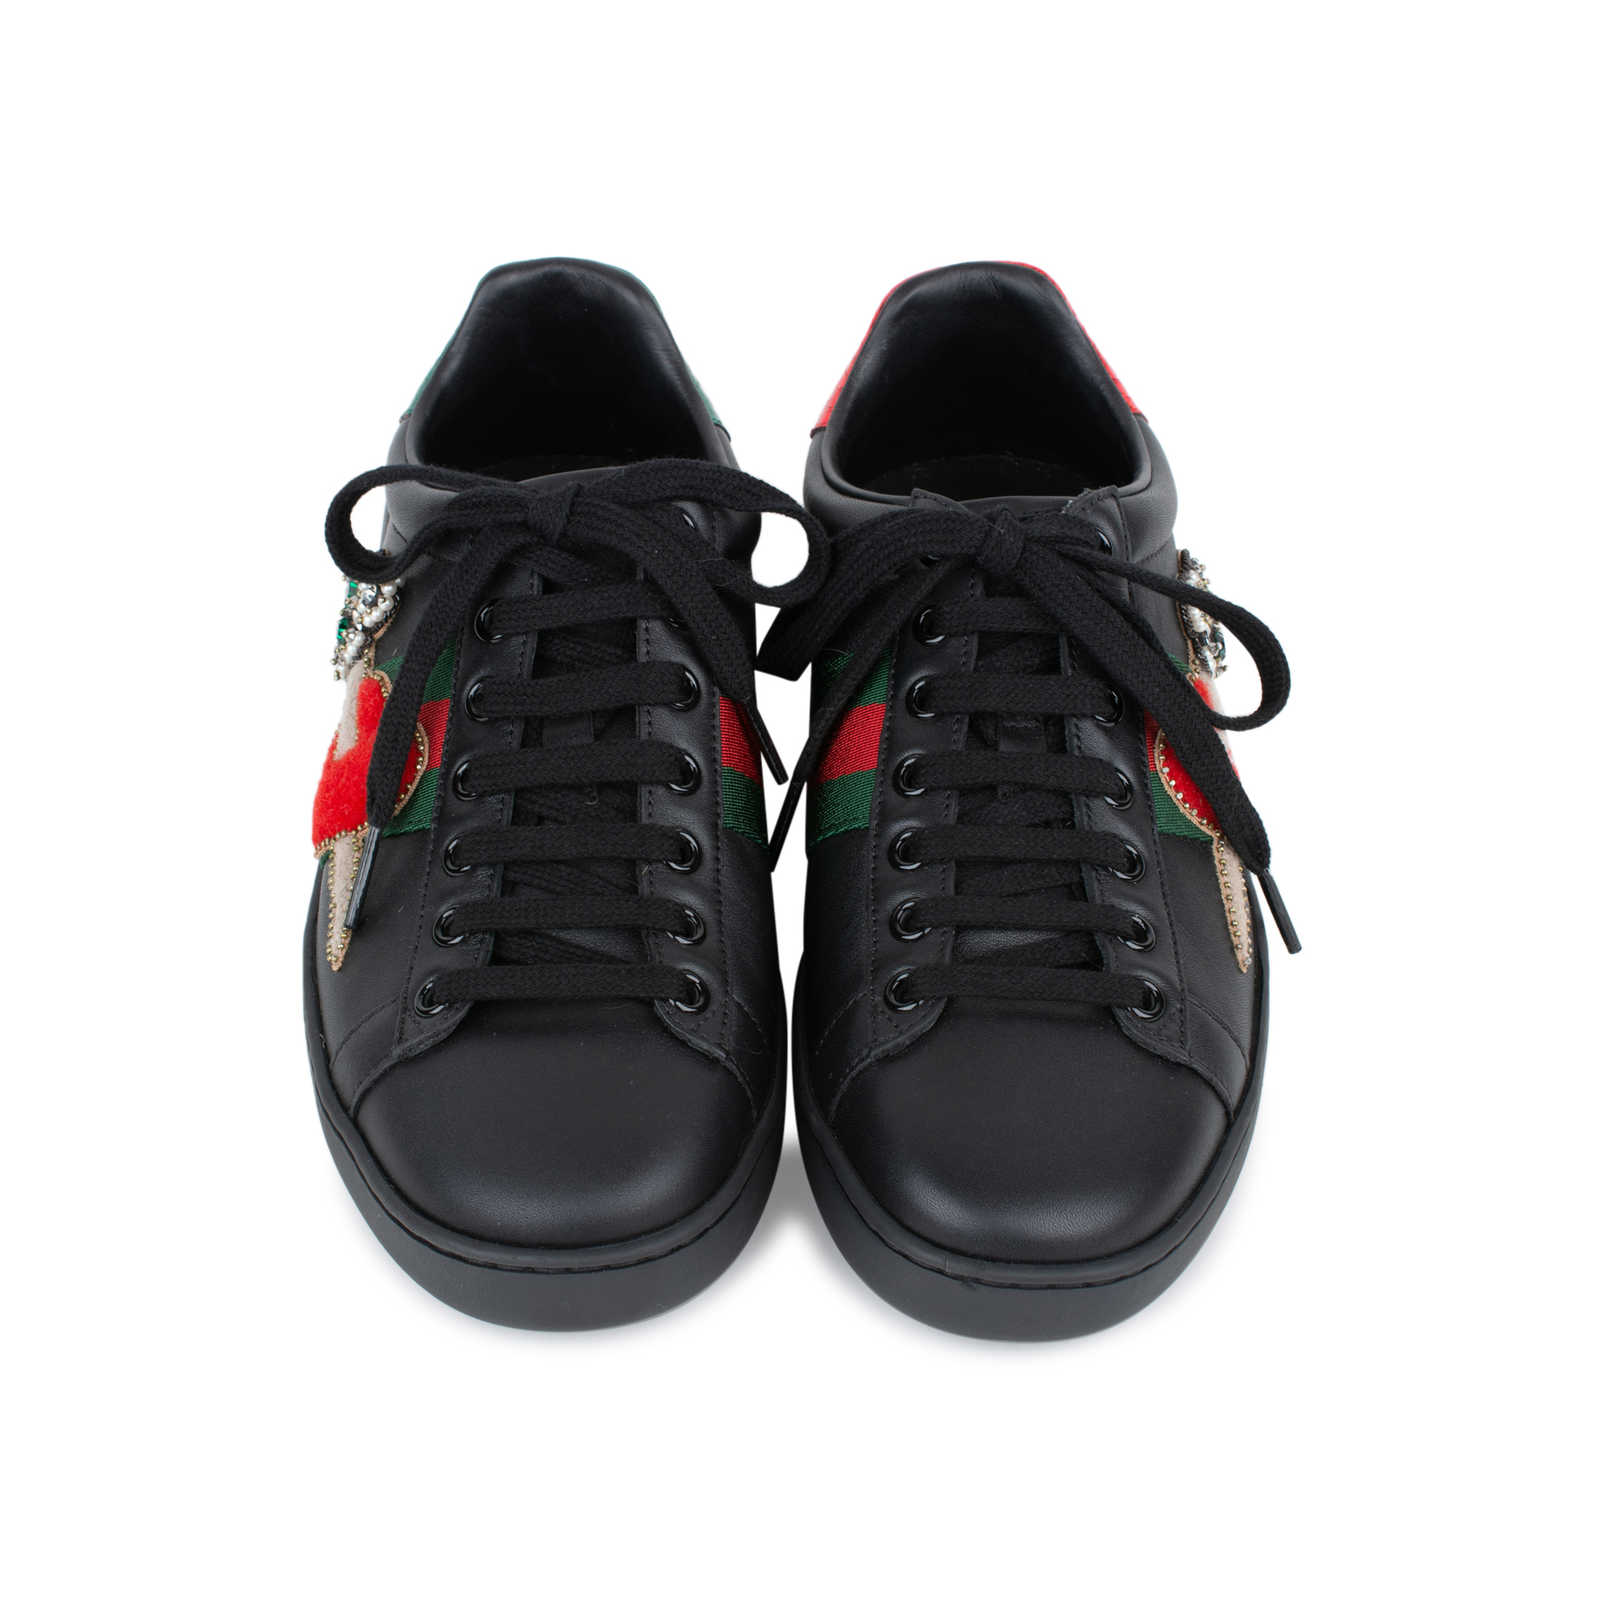 b3bde84a50f Authentic Second Hand Gucci Ace Pierced Heart Leather Sneakers  (PSS-145-00202) ...